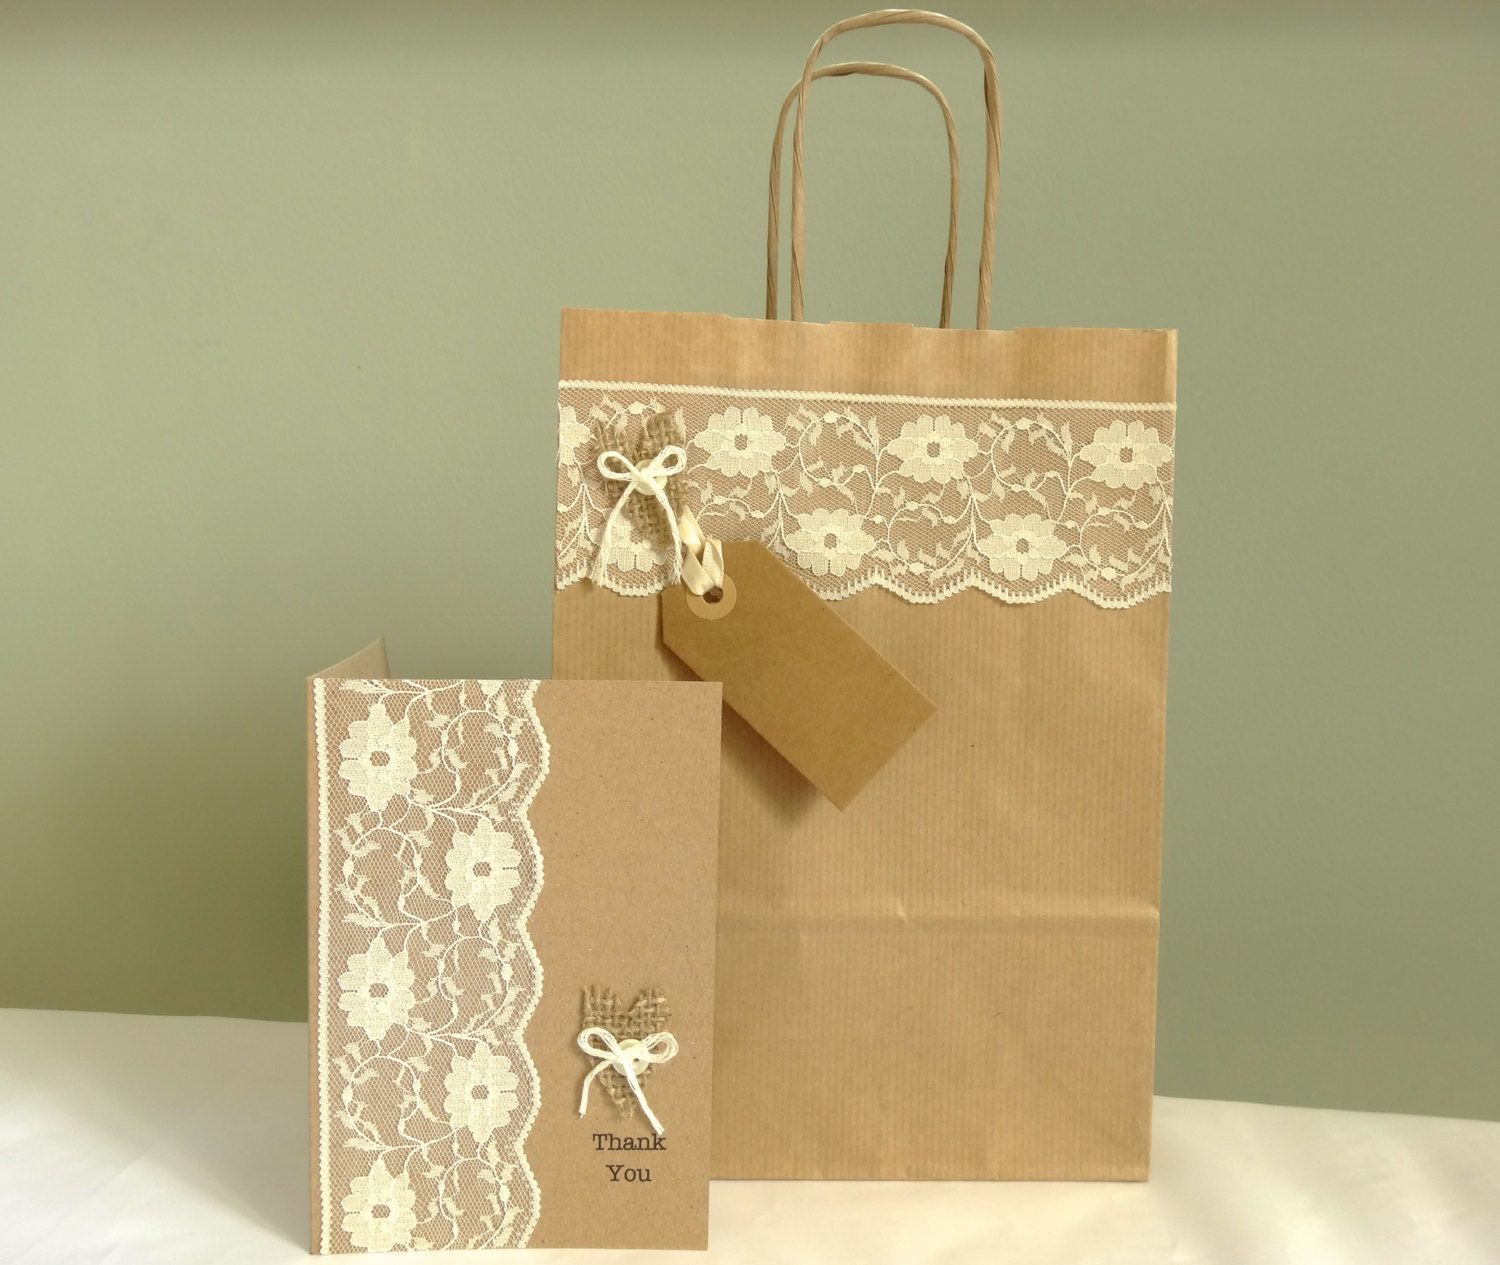 Wedding Gift Bag Decorating Ideas : Ideas Paper Gift Bags Wedding hessian bag etsy rustic wedding gift and ...